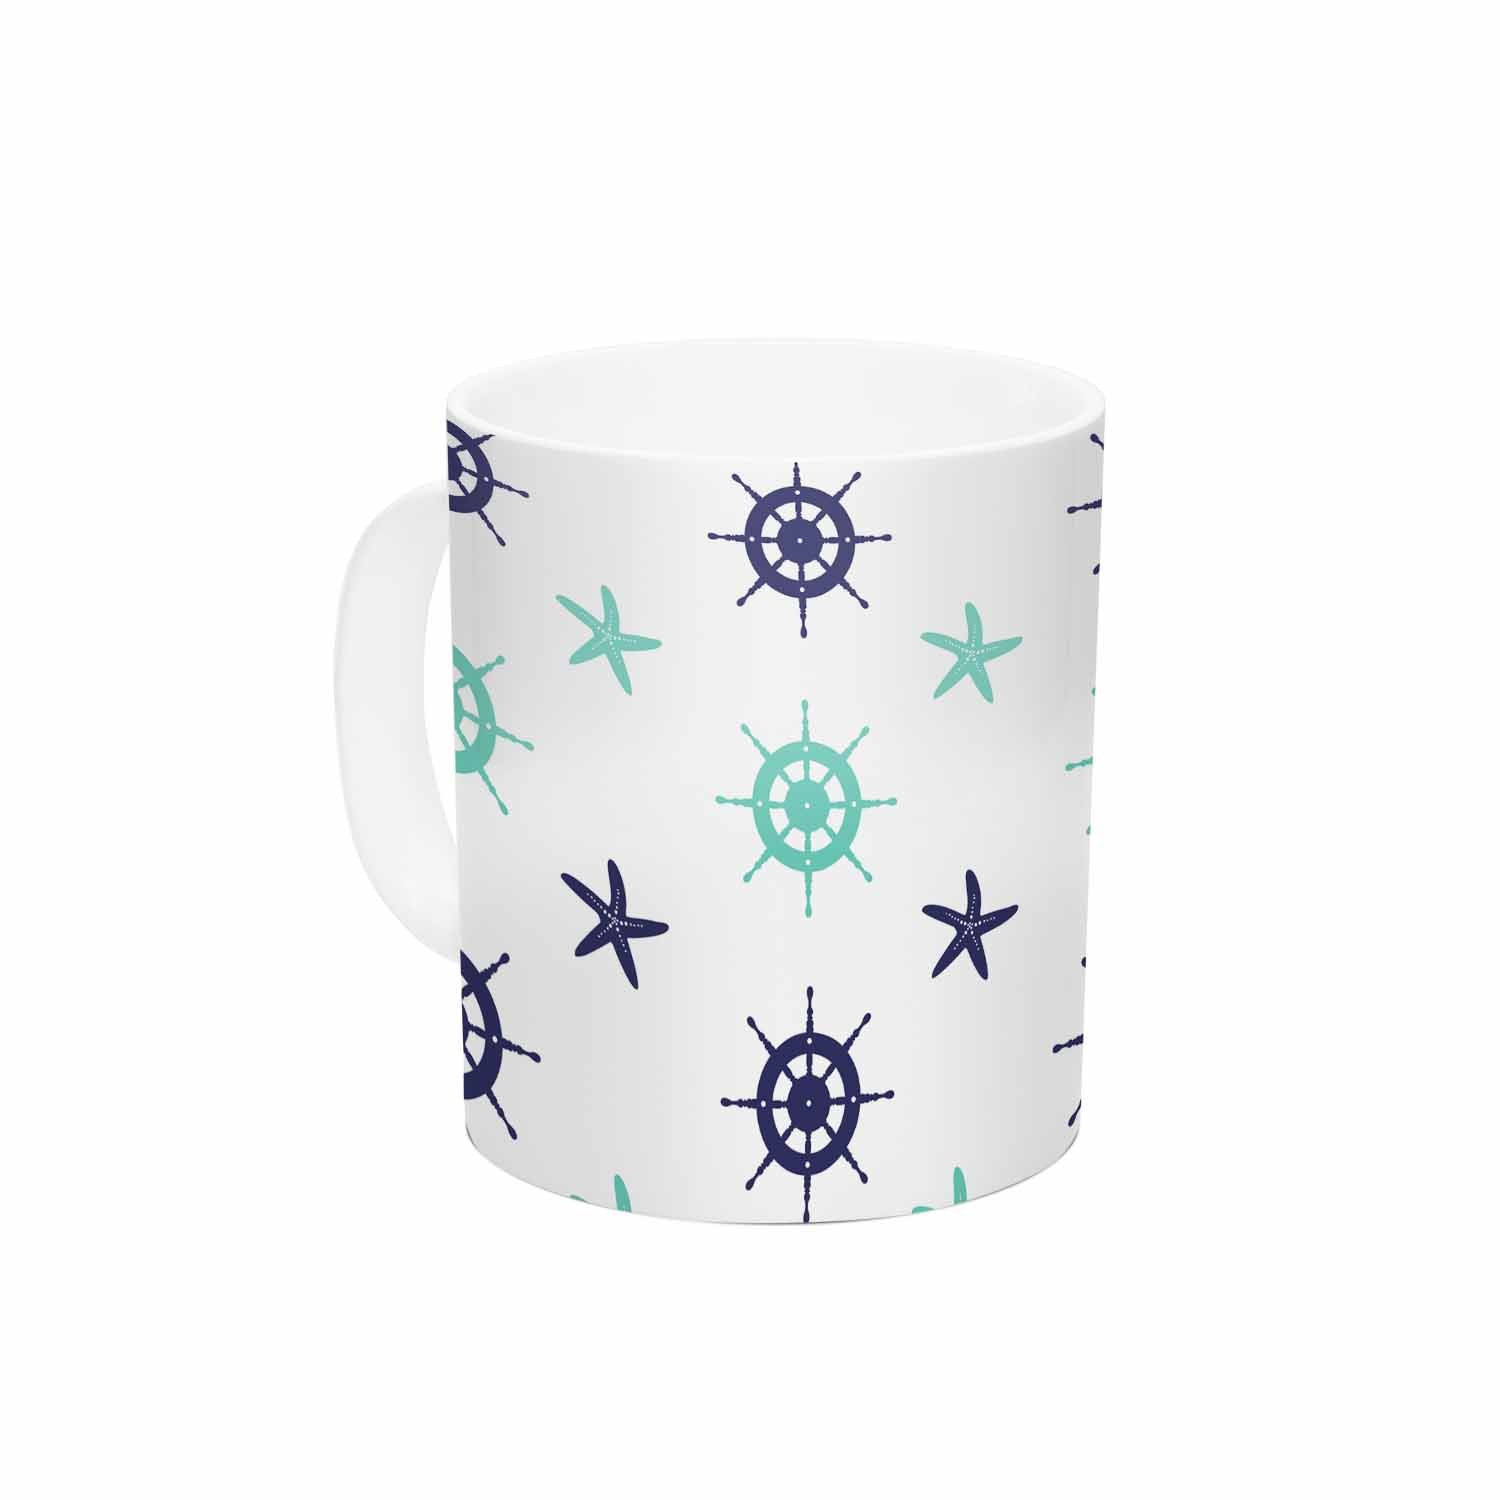 KESS InHouse afe imagesHelm Wheel /& Starfish Blue Teal Illustration Ceramic Coffee Mug 11oz Multi